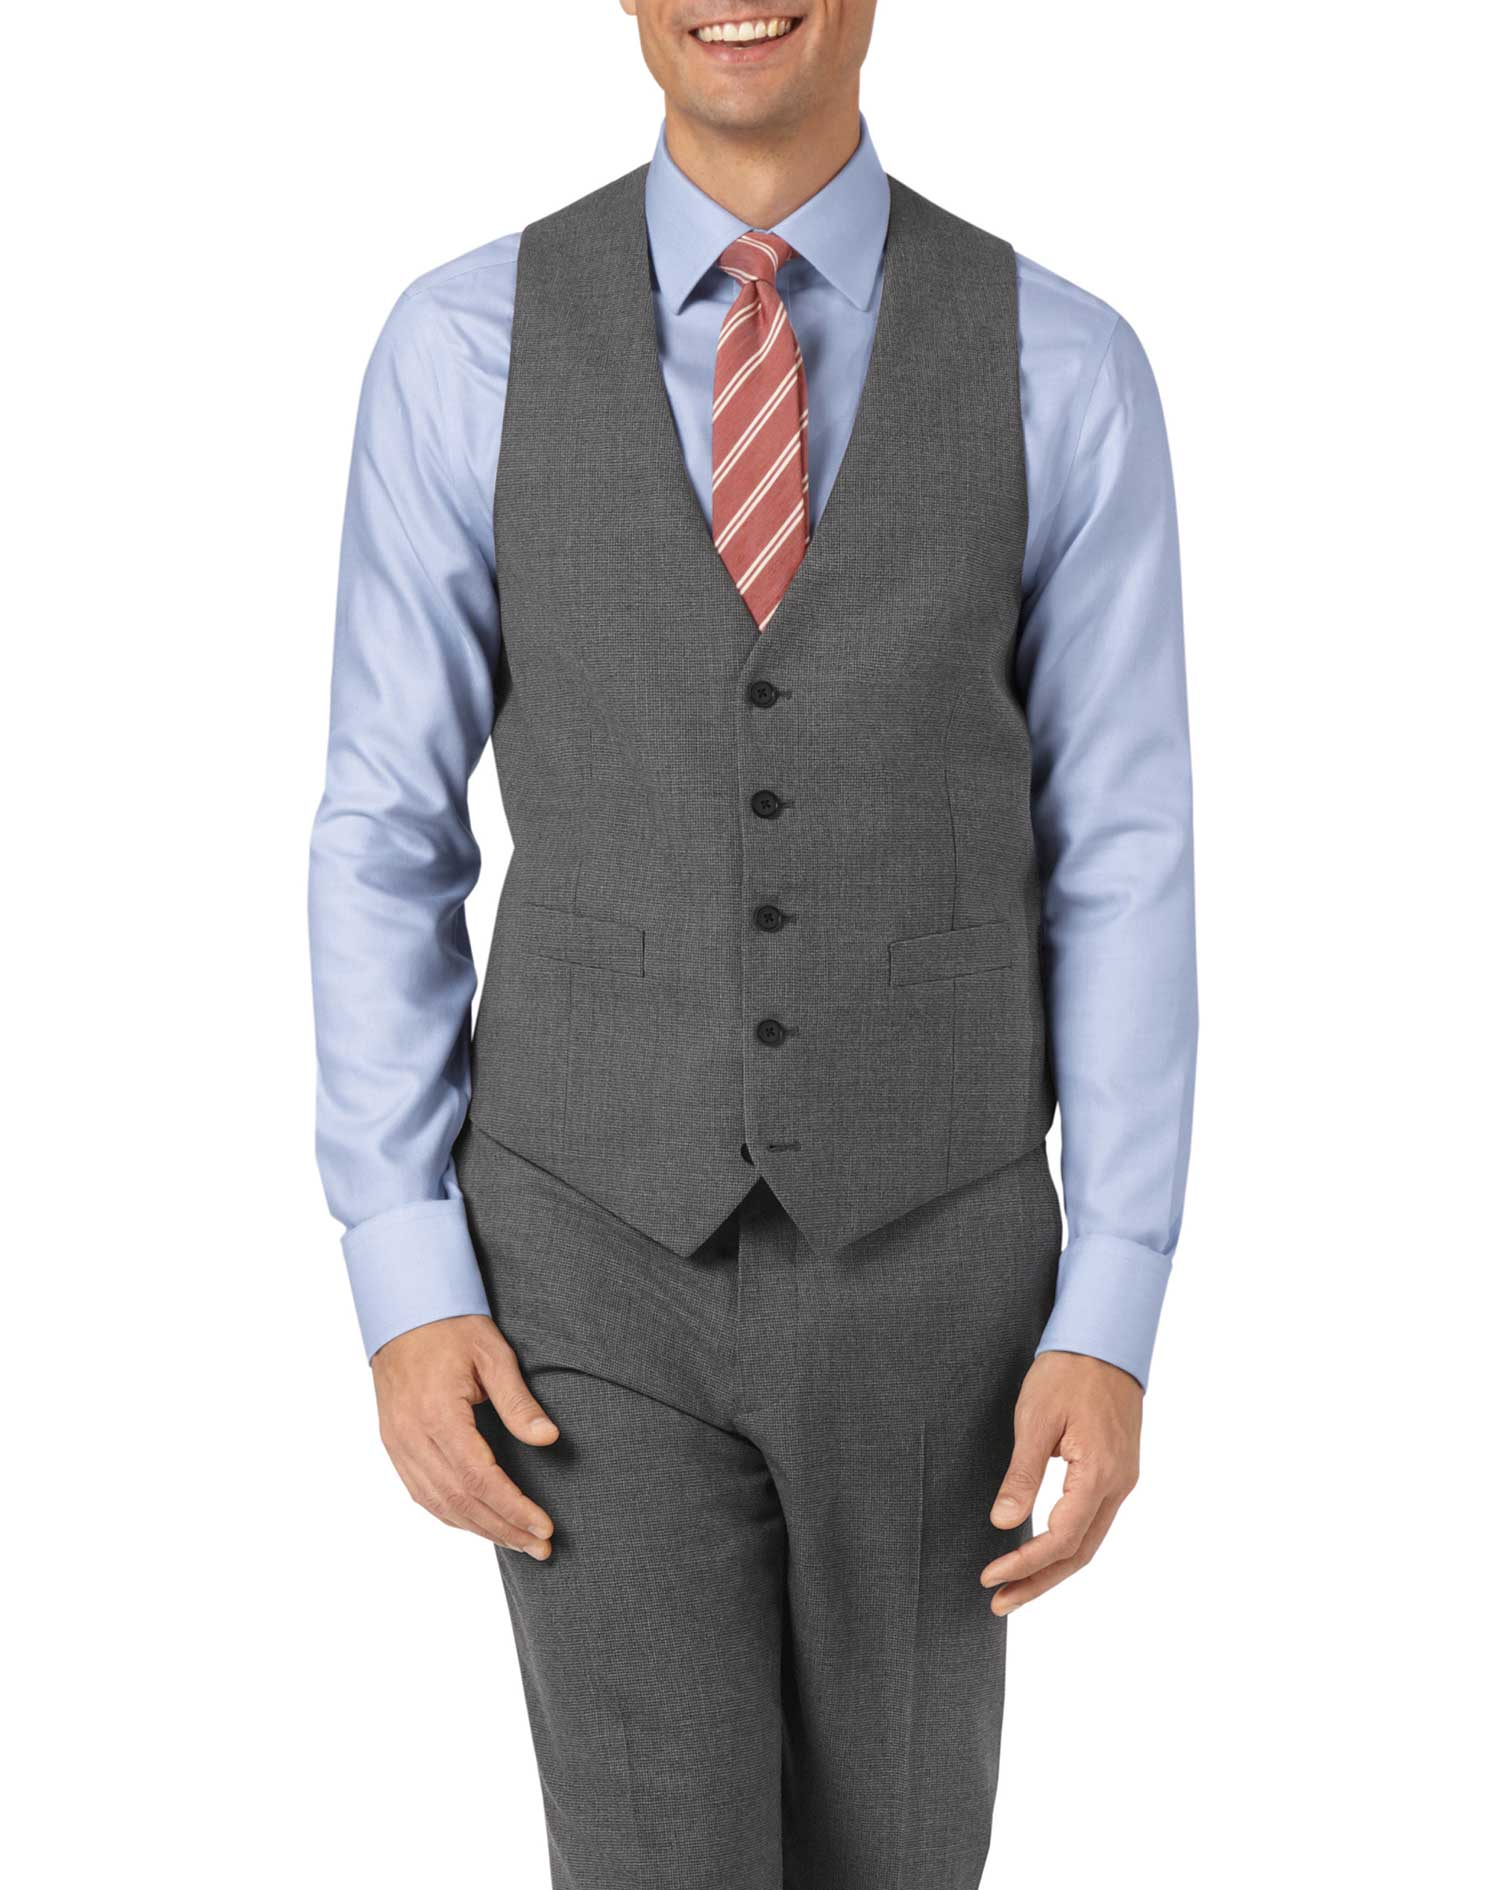 Charcoal Adjustable Fit Panama Puppytooth Business Suit Wool Waistcoat Size w36 by Charles Tyrwhitt